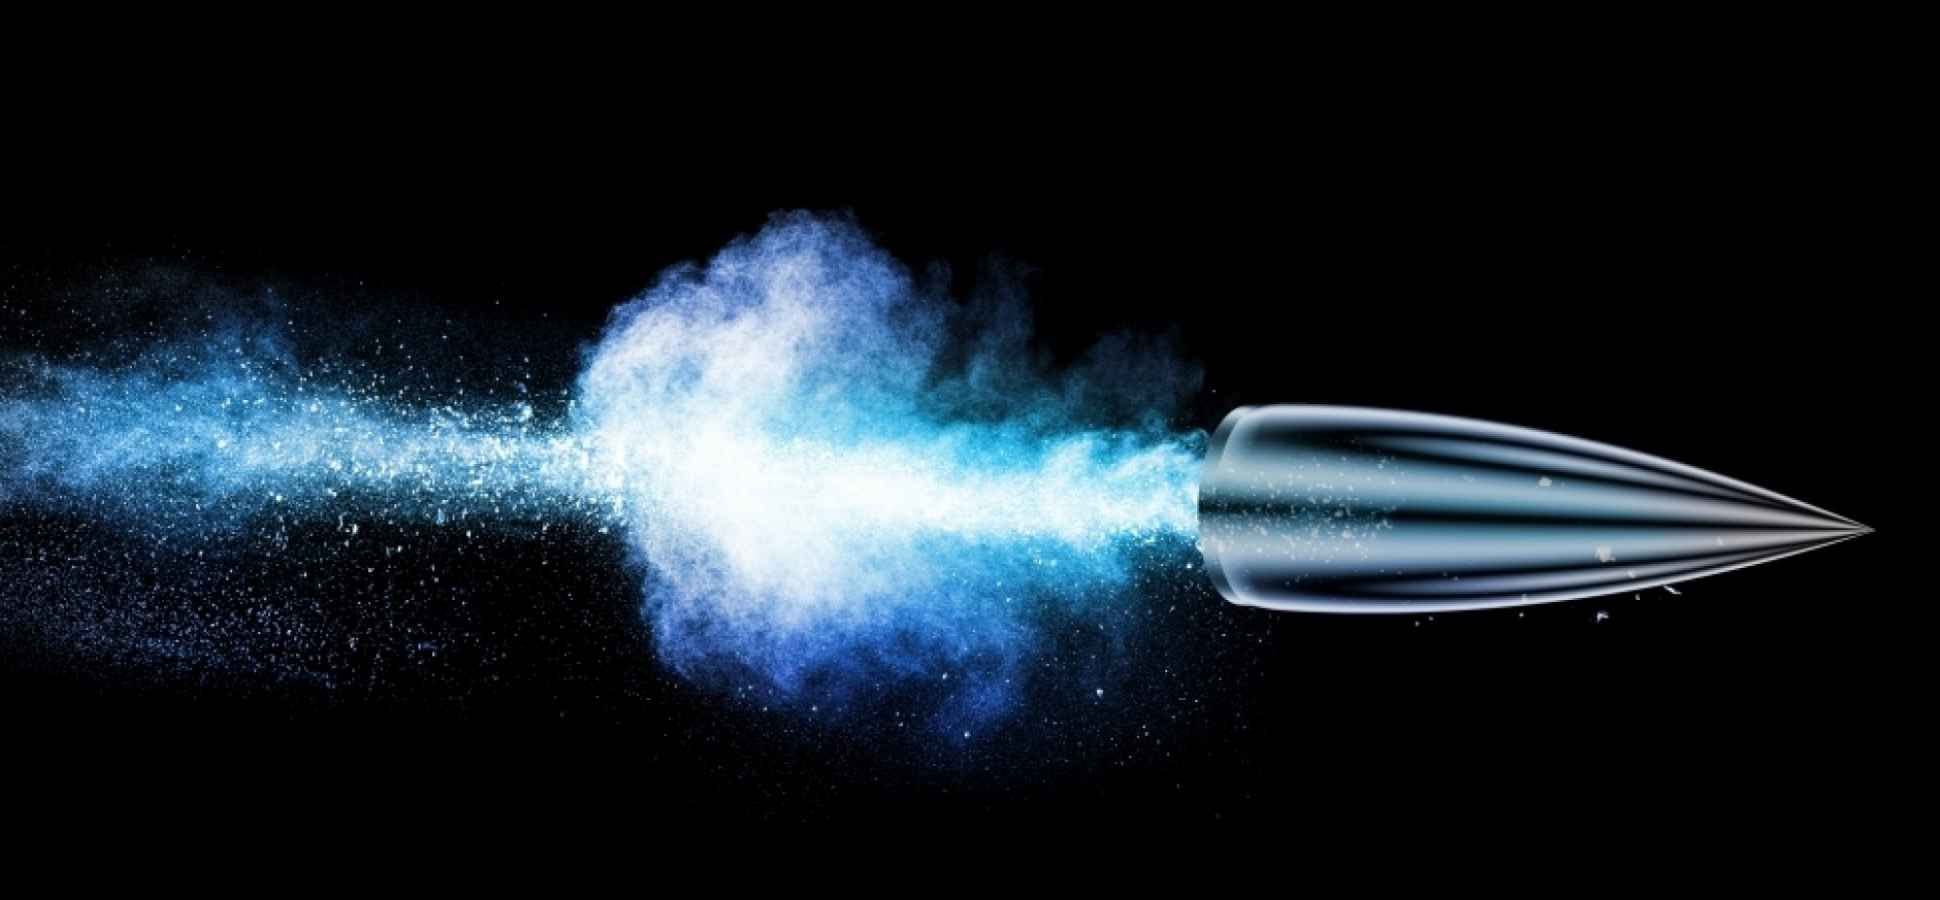 Female Scientist's Metal Foam Can Shatter Armor-Piercing Bullets